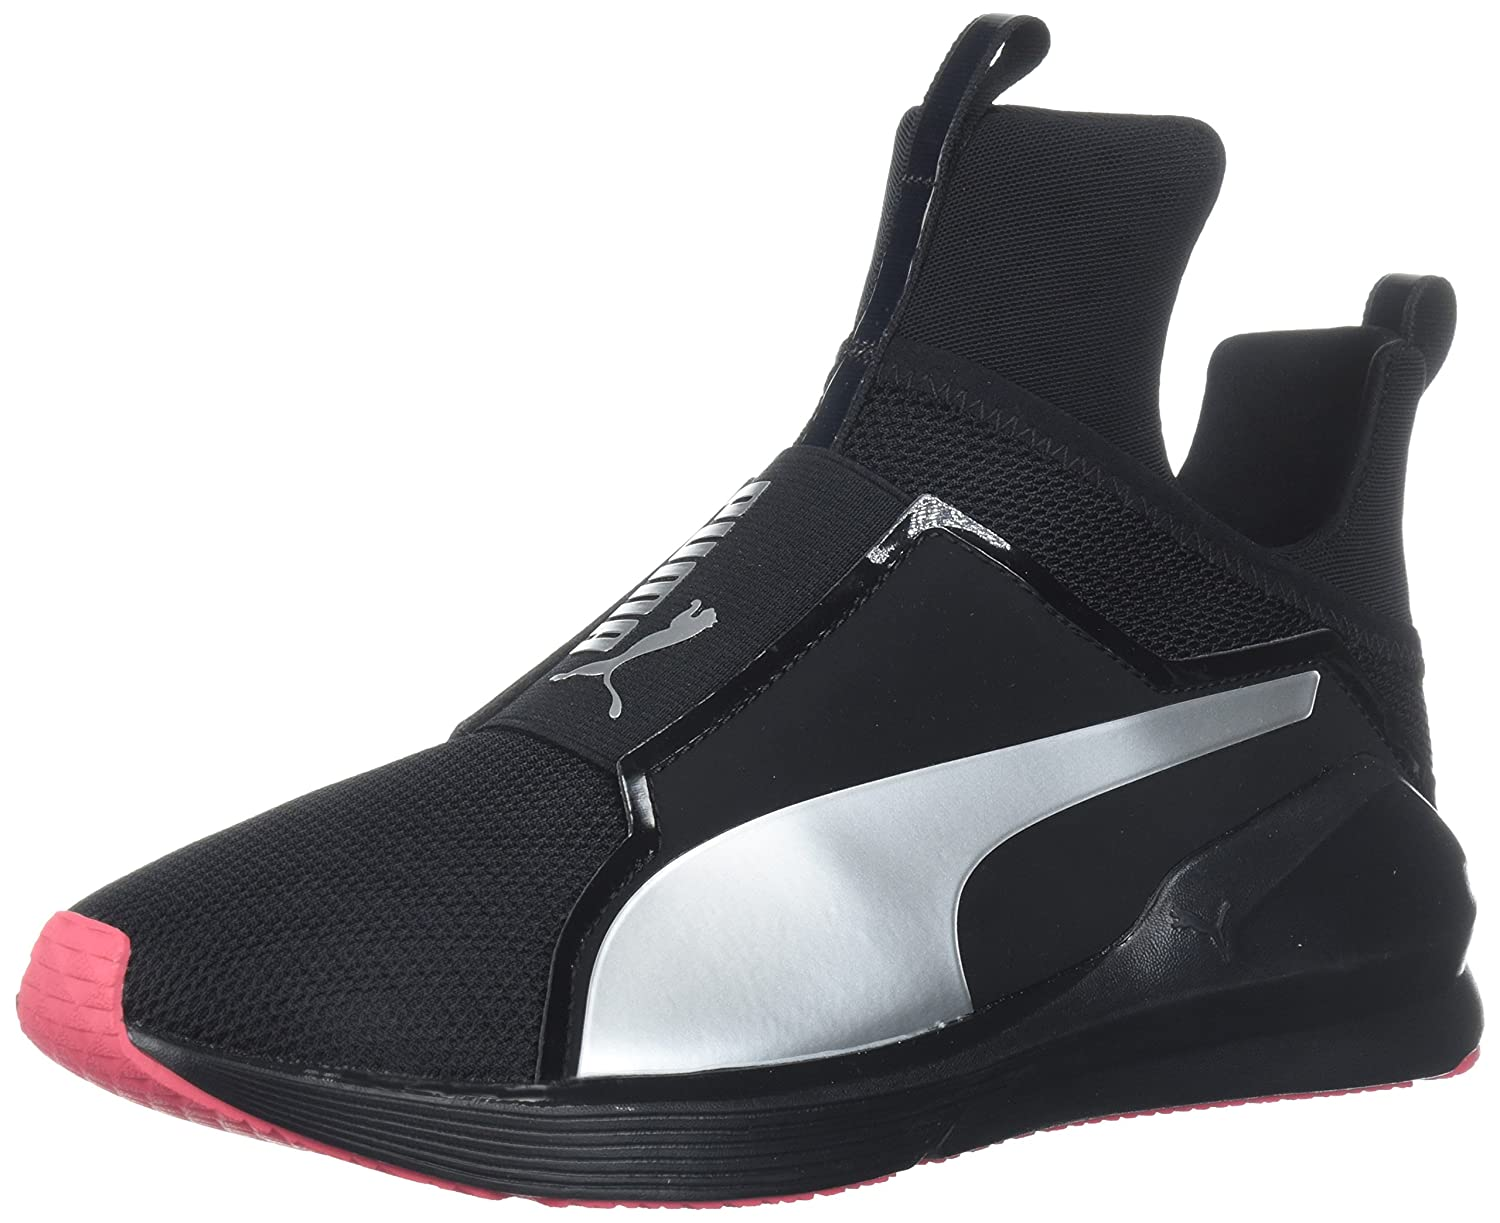 PUMA Women's Fierce Core Cross-Trainer Shoe B072N8HVH8 7.5 B(M) US|Puma Black-paradise Pink